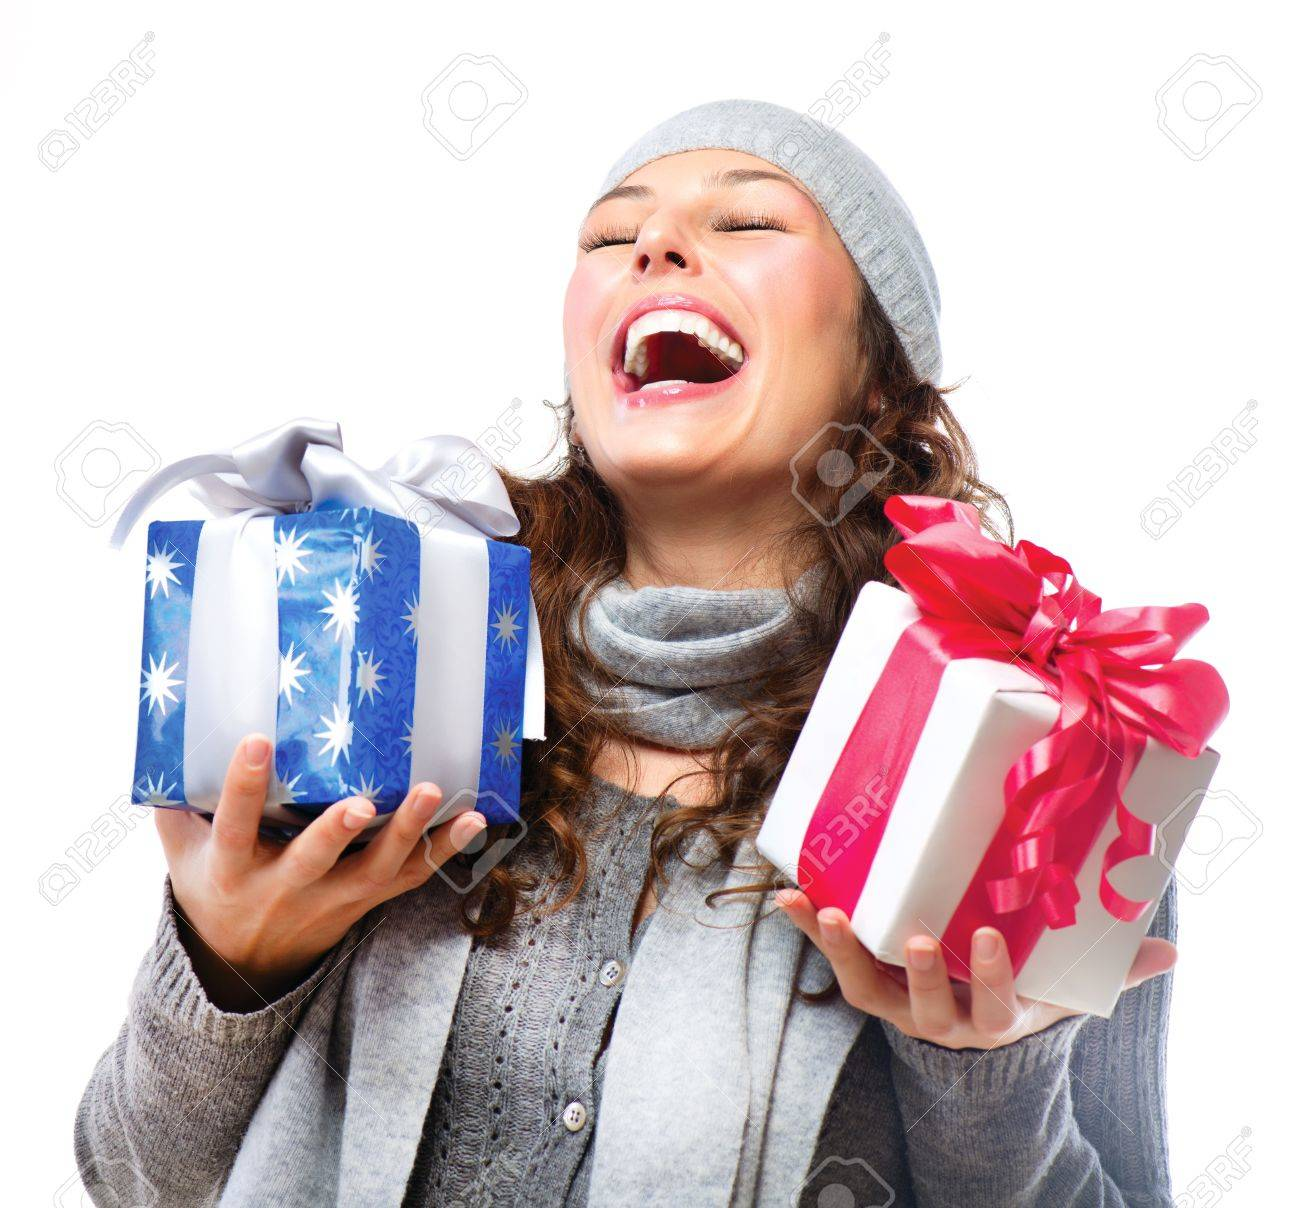 Happy Young Woman With Christmas Gifts  Gift Box Stock Photo - 16854713